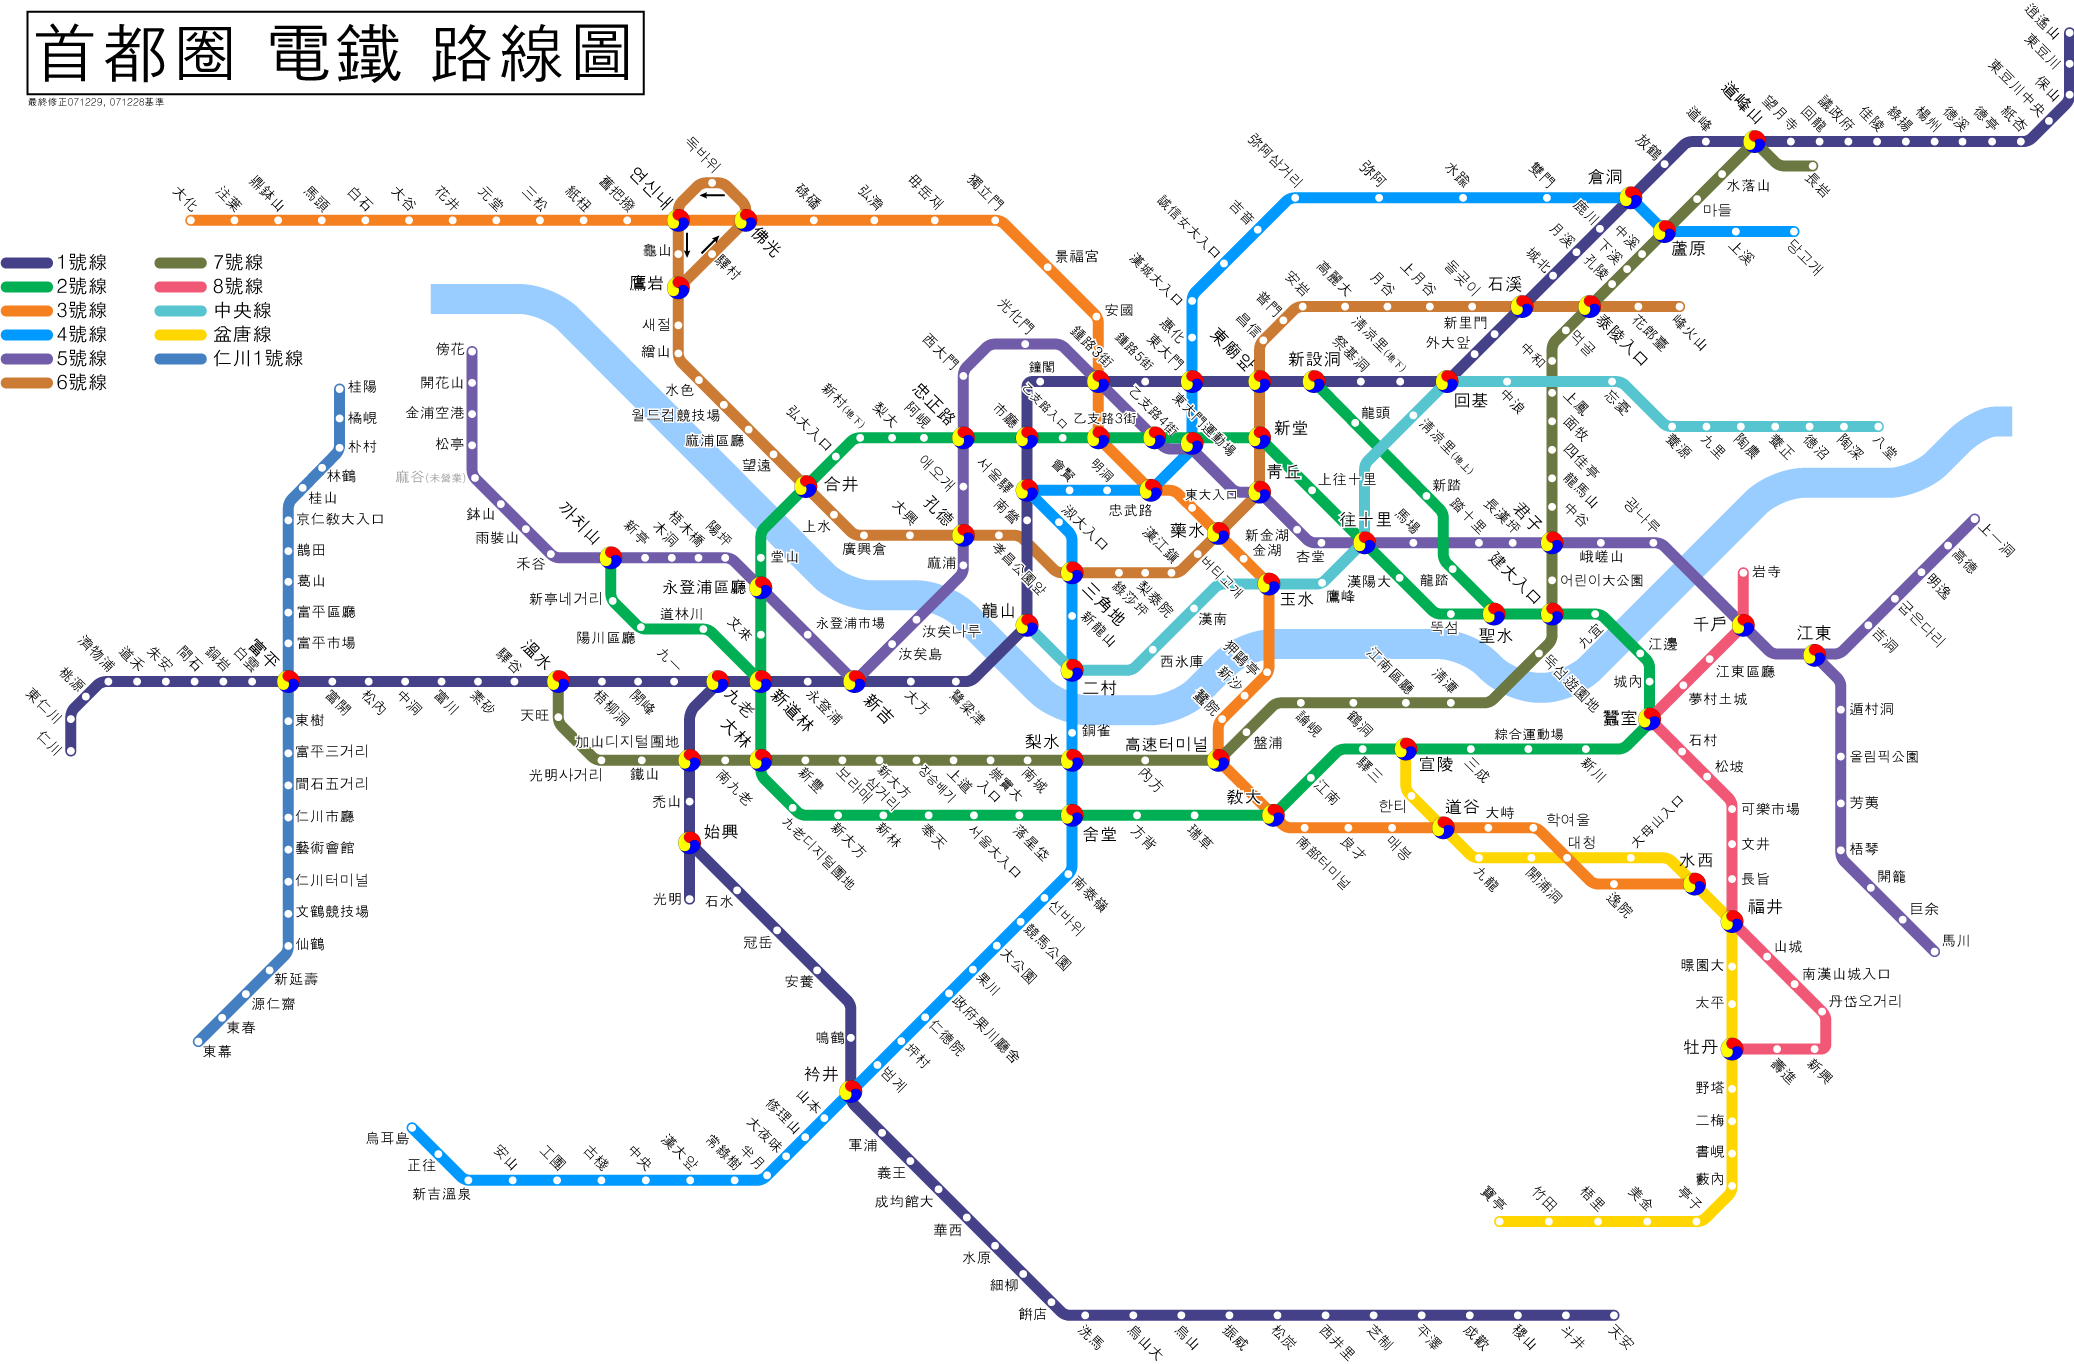 Eoul Subway Map.File Seoul Subway Linemap Ko Hanja Png Wikipedia